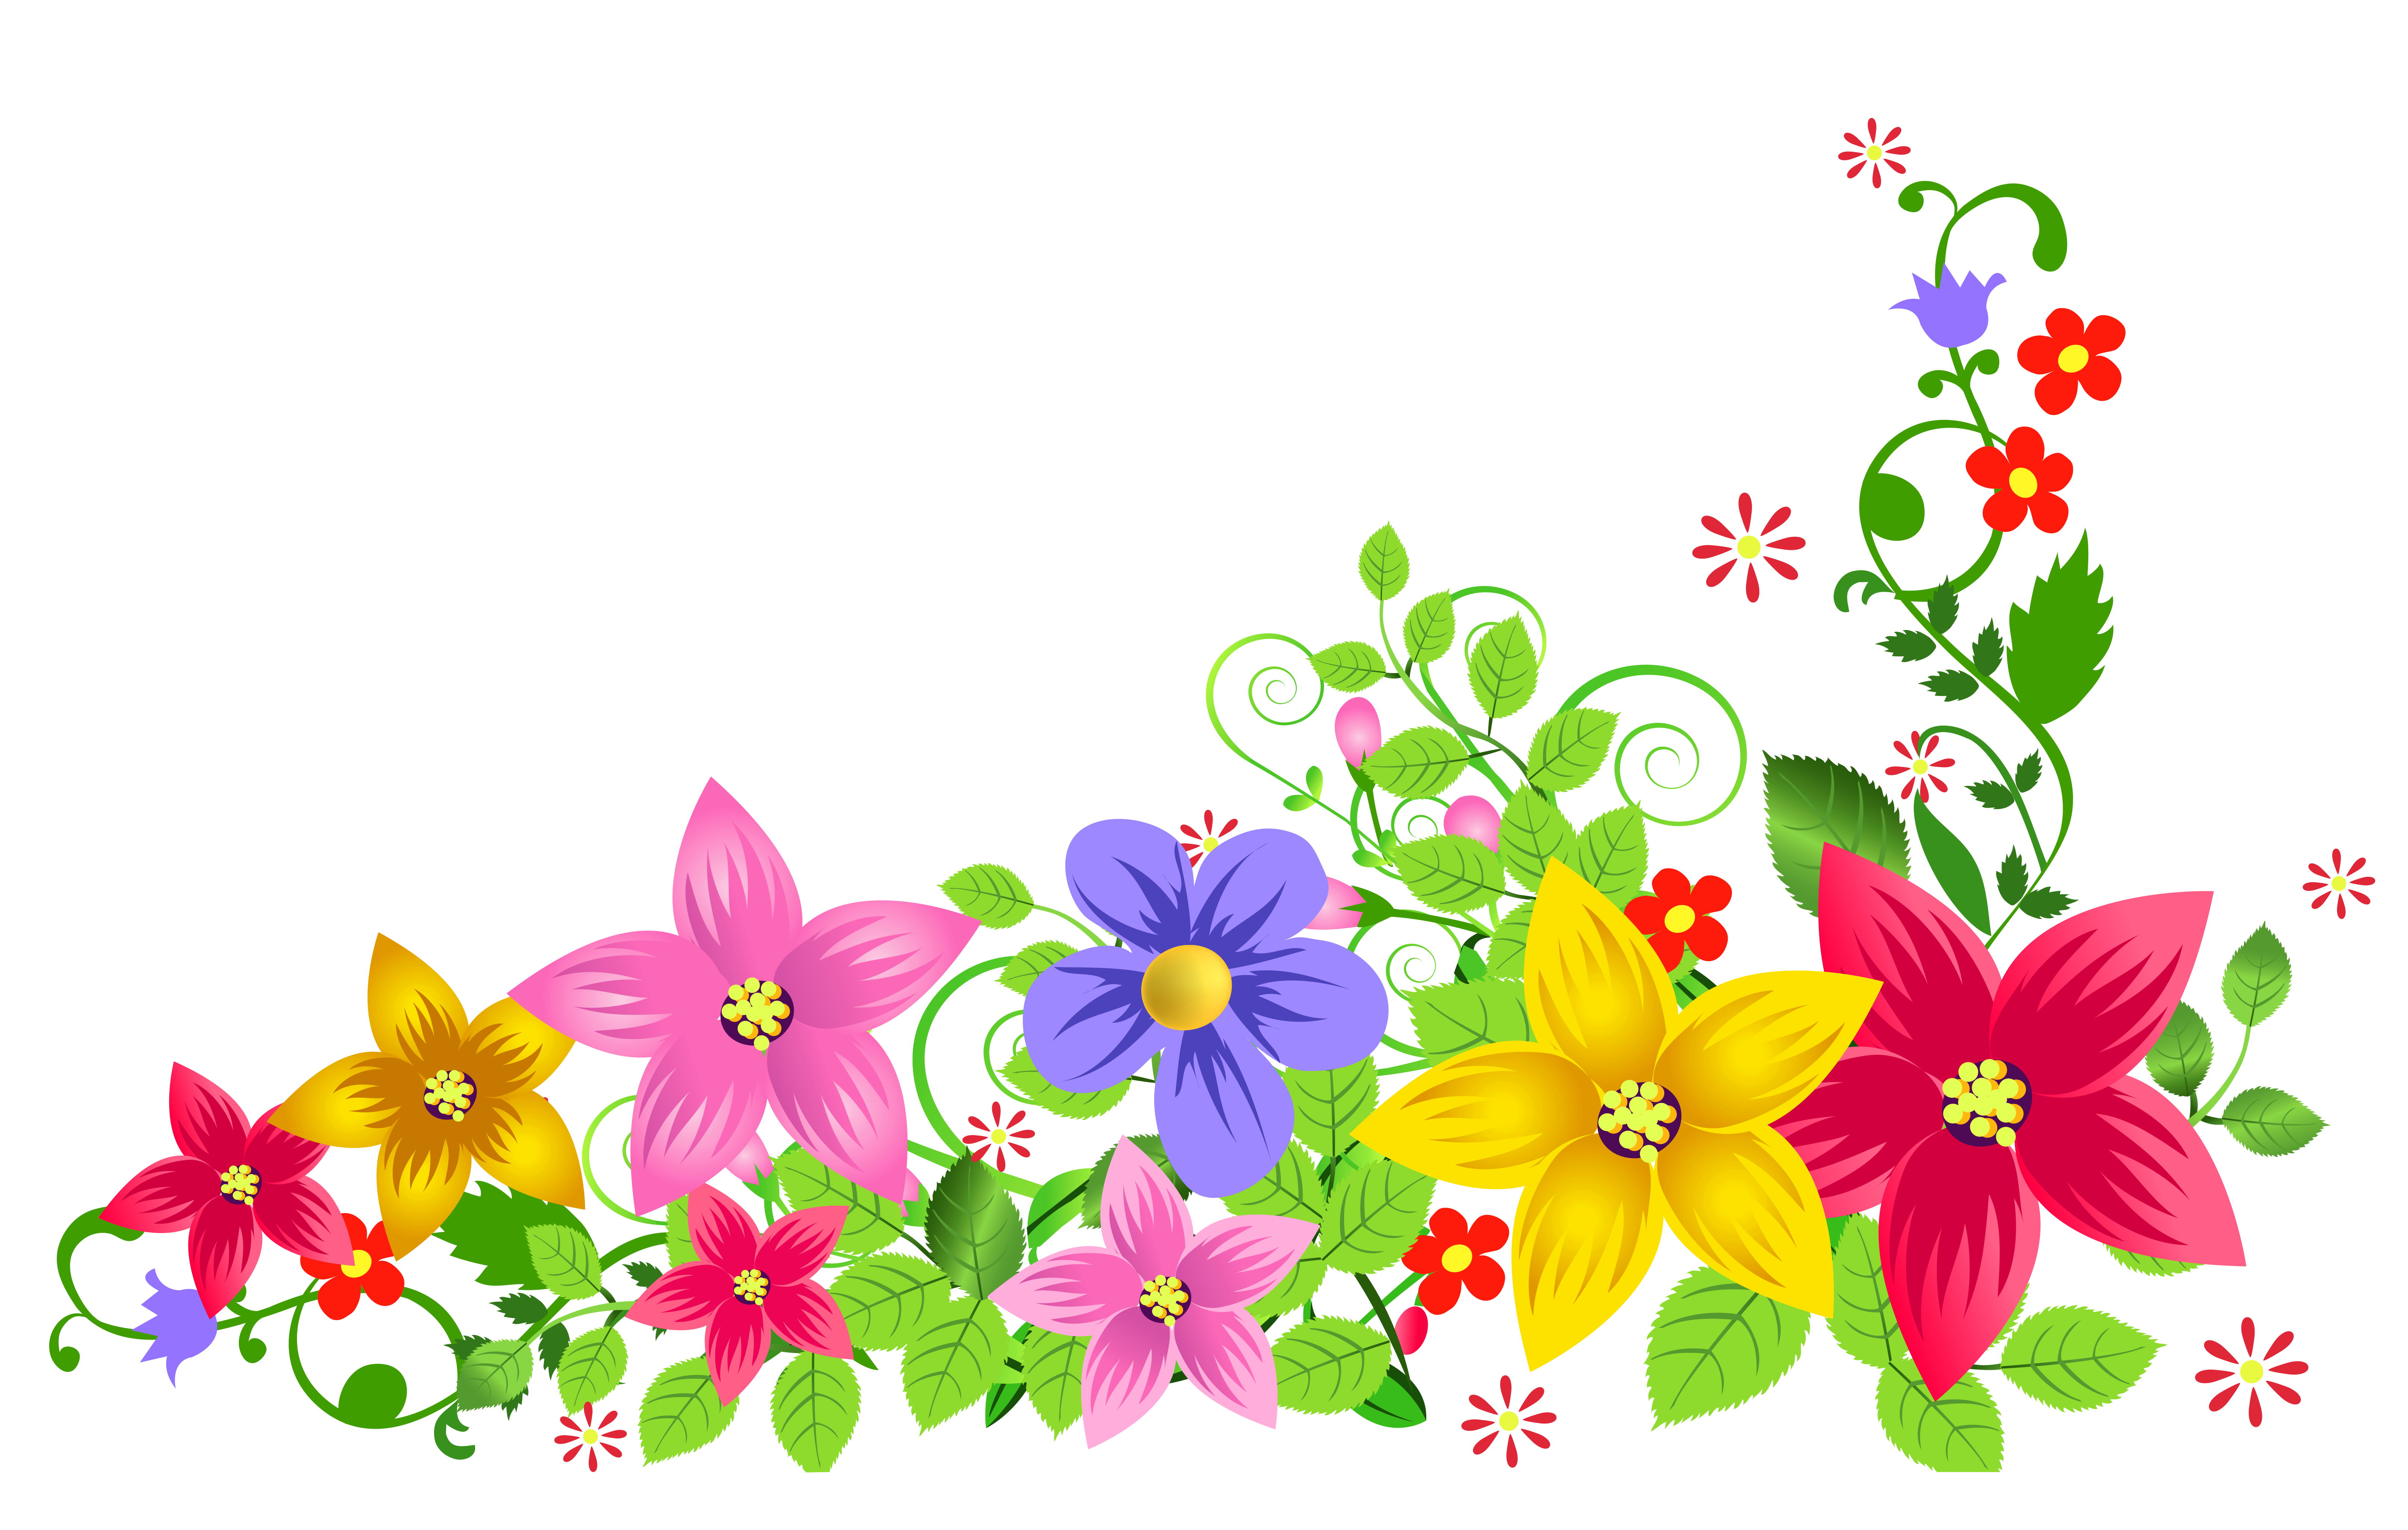 Flower hd clipart picture transparent library Flower HD PNG Transparent Flower HD.PNG Images. | PlusPNG picture transparent library